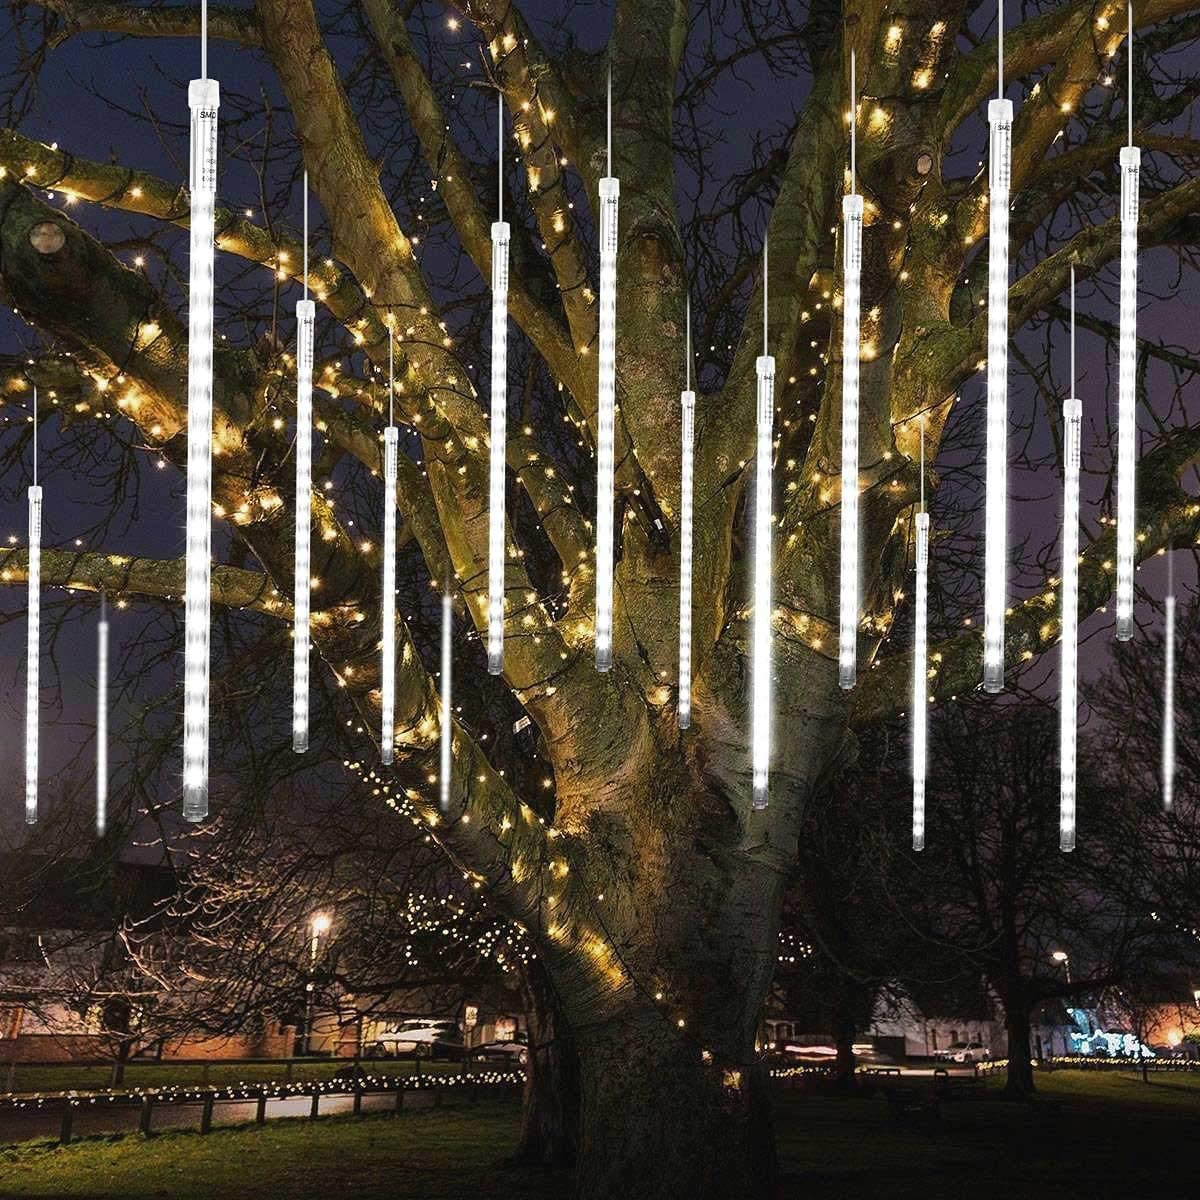 MAOYUE Meteor Shower Lights, 16 Tubes 640 LED Icicle Lights Outdoor Christmas Decorations Lights Waterproof Cascading Lights for Holiday Decorations, Tree, Eaves, Roof, Yard, Garden, Party, Cold White